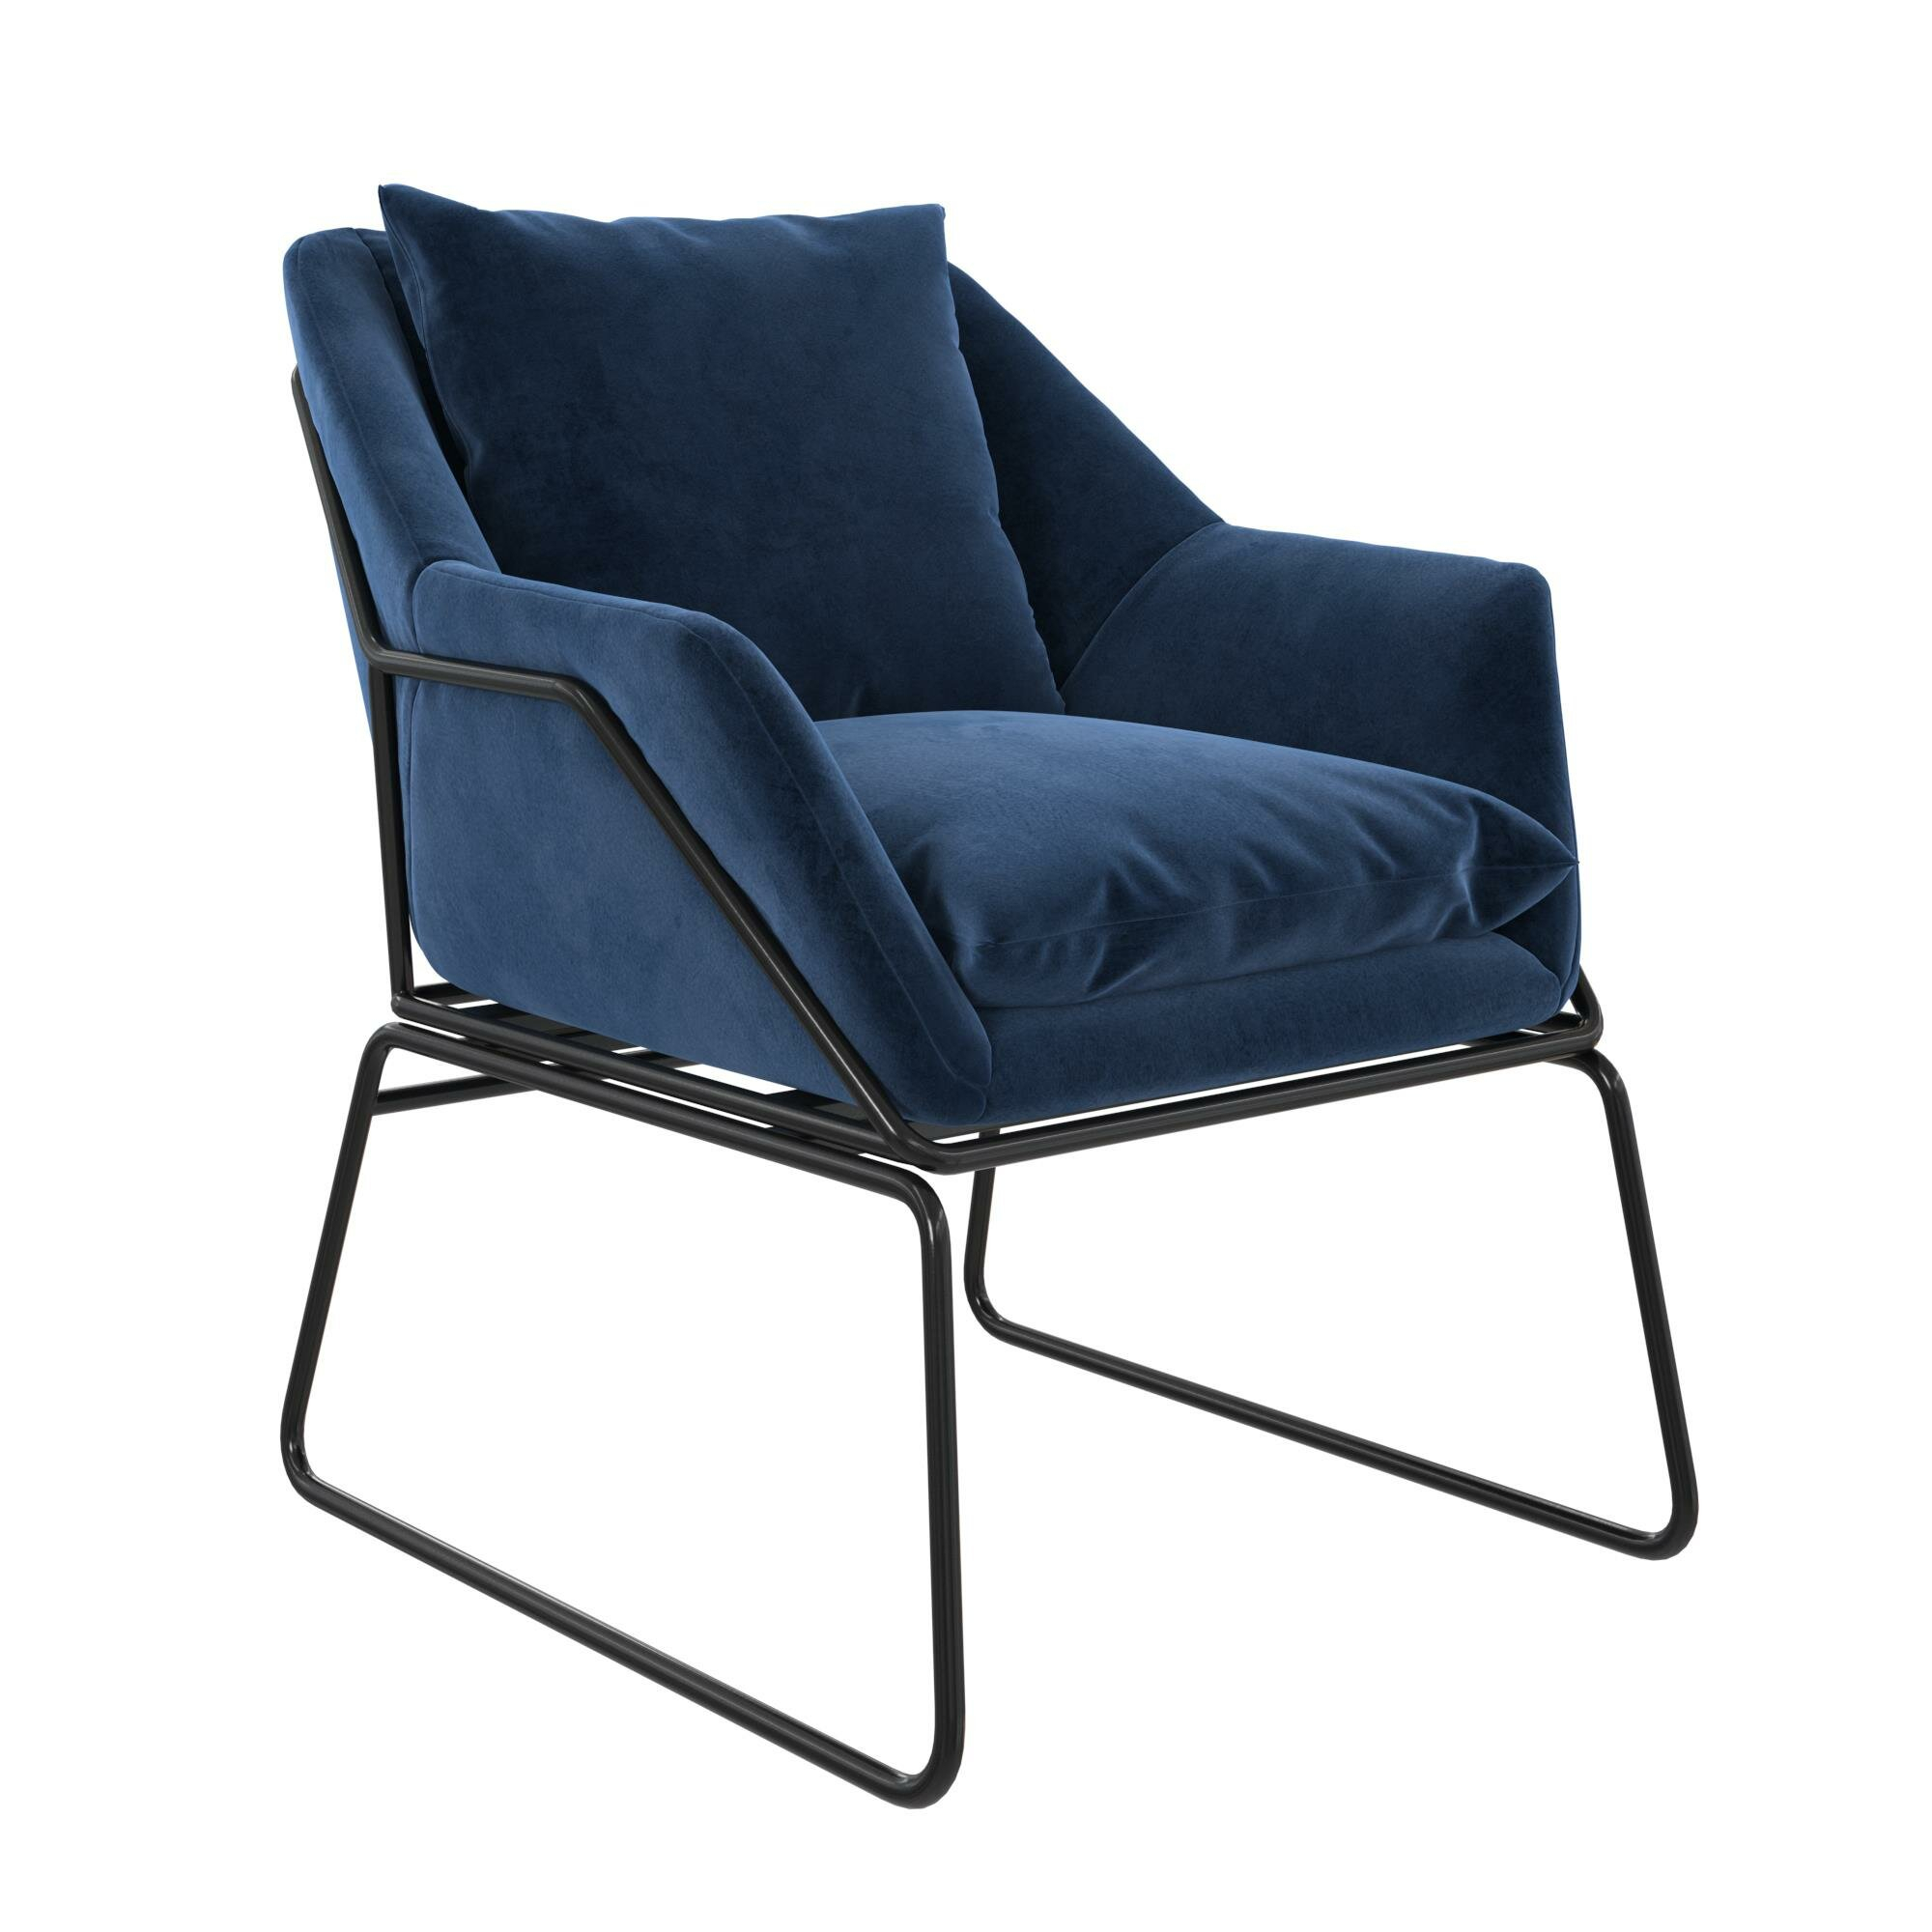 Alivia Armchair Throughout Aalivia Slipper Chairs (View 3 of 15)